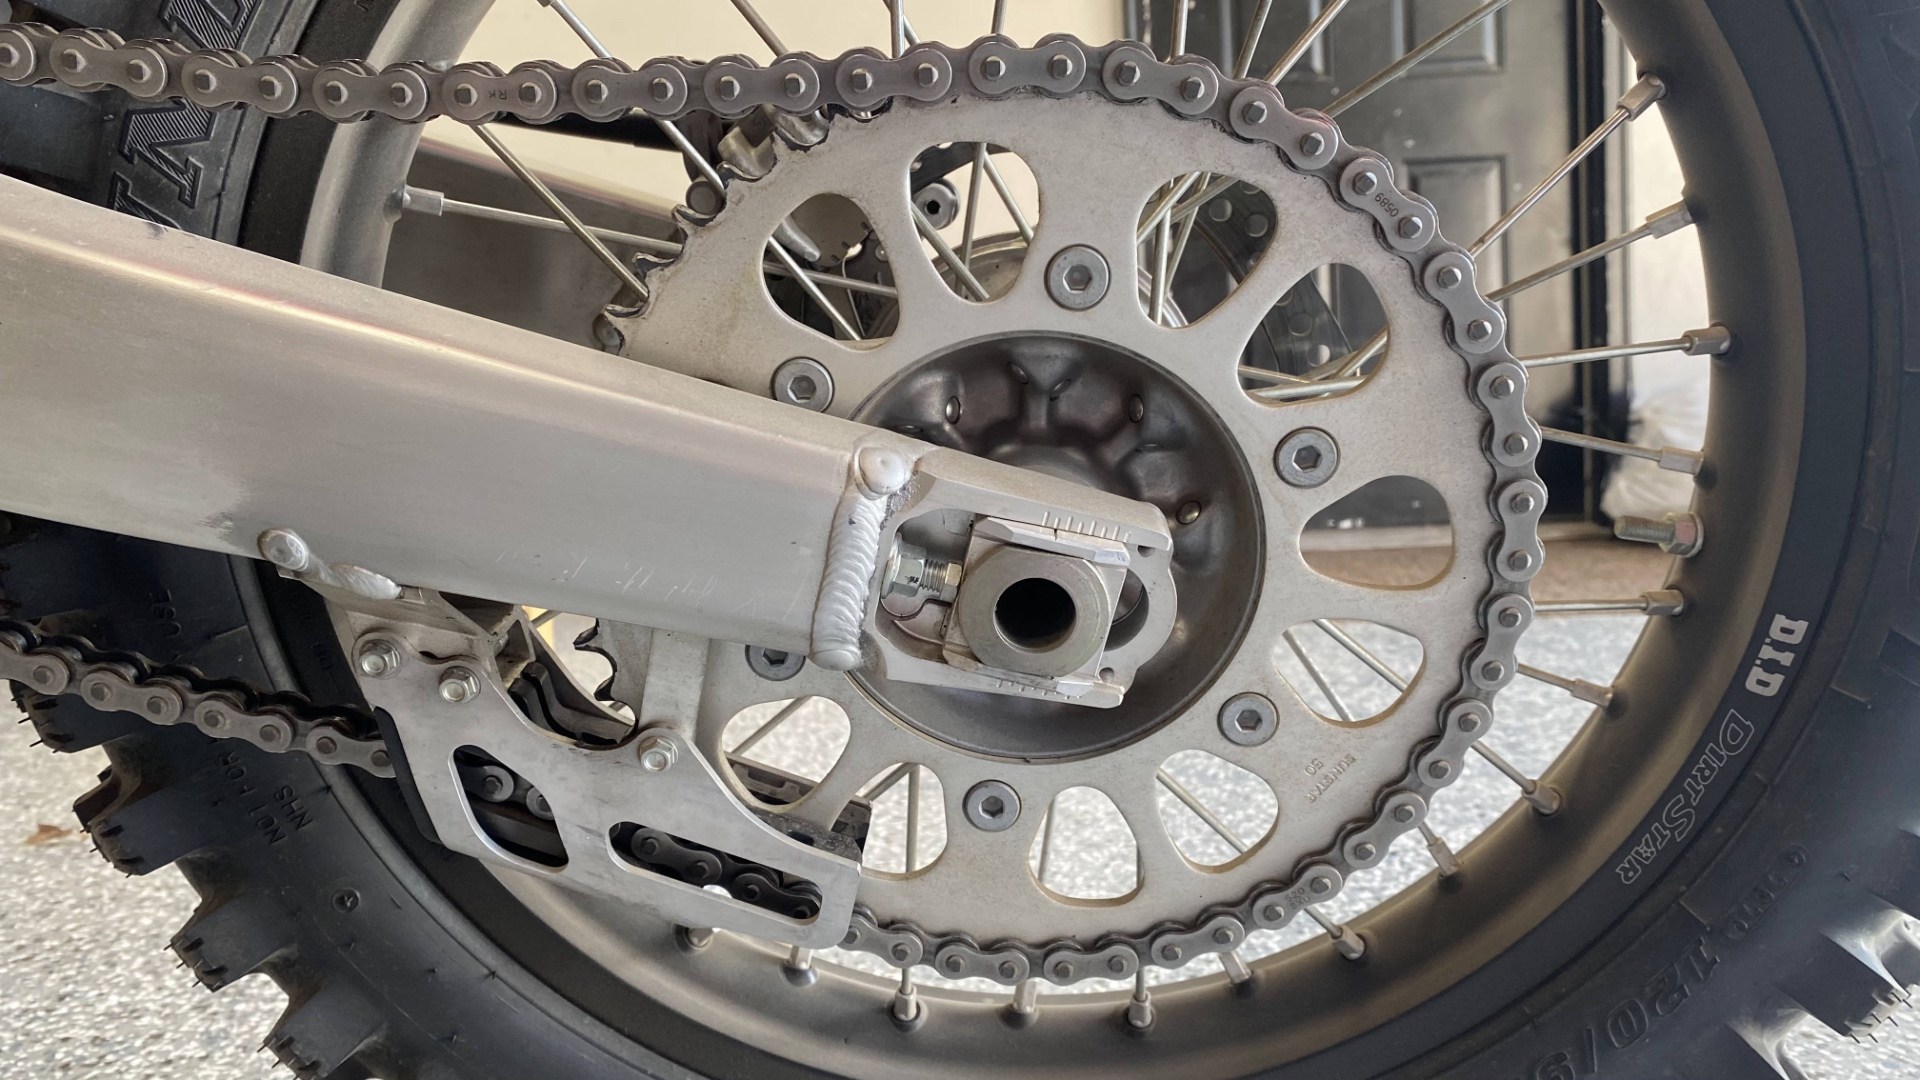 The rear sprocket of a CRF450RX.